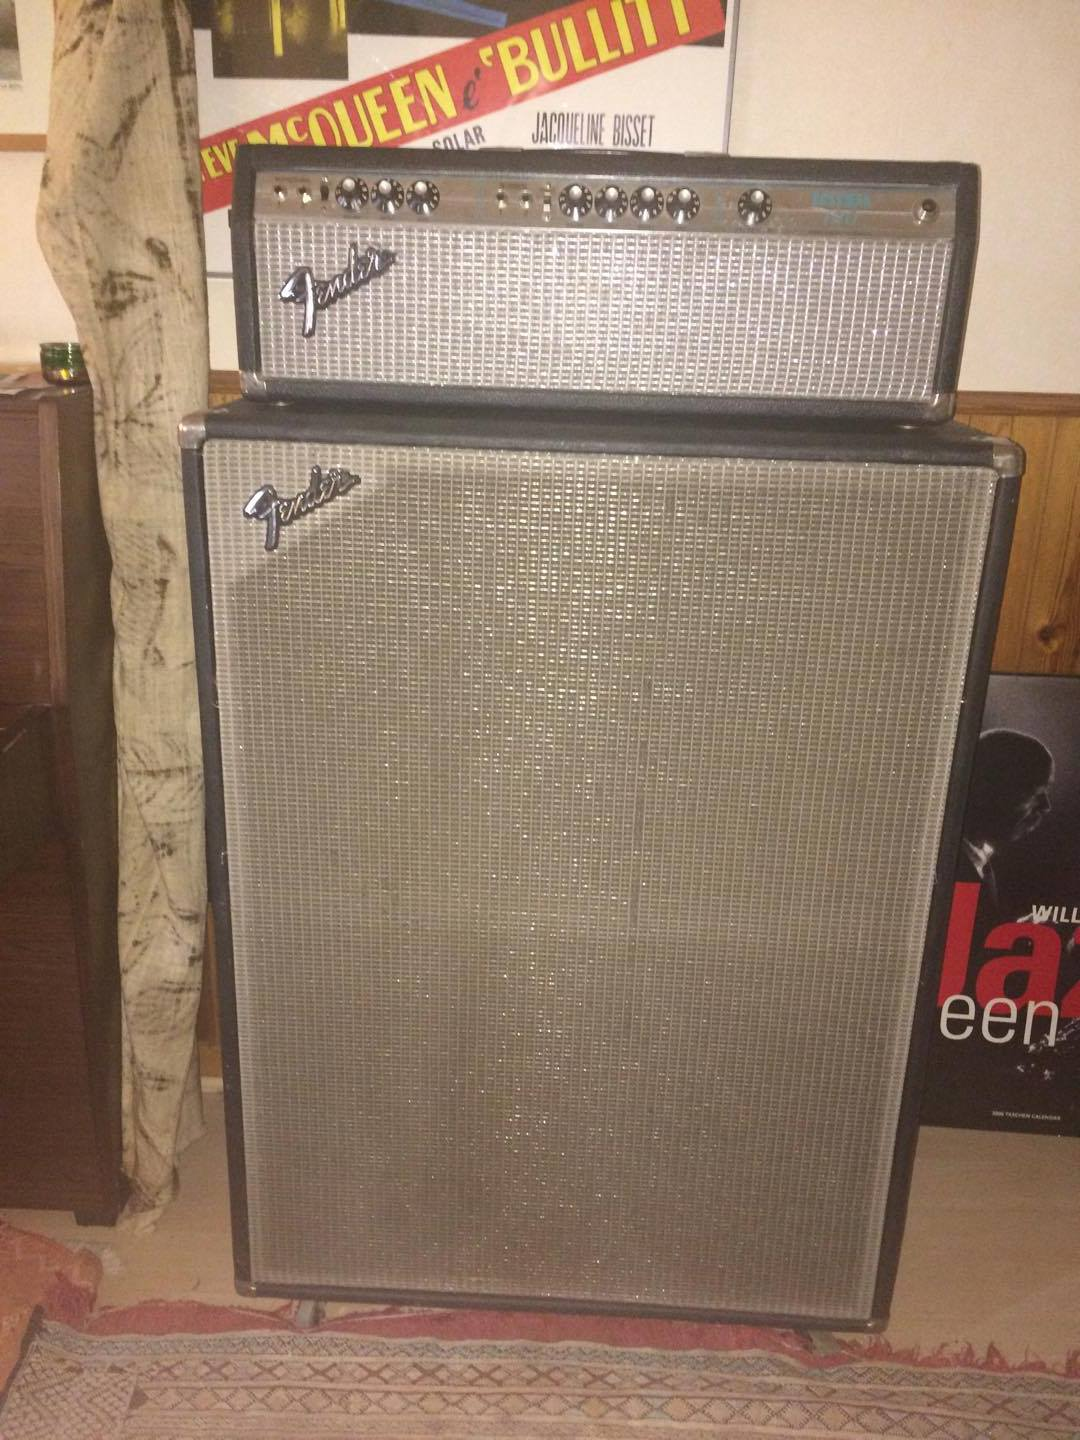 dating fender bassman silverface 1968-1983 bassman, bassman 50, bassman 70 1968-1983 bassman chrome & black script fender w/ tail(68-74) or fender® w/o tail (74-83) (head and cab) weight:.